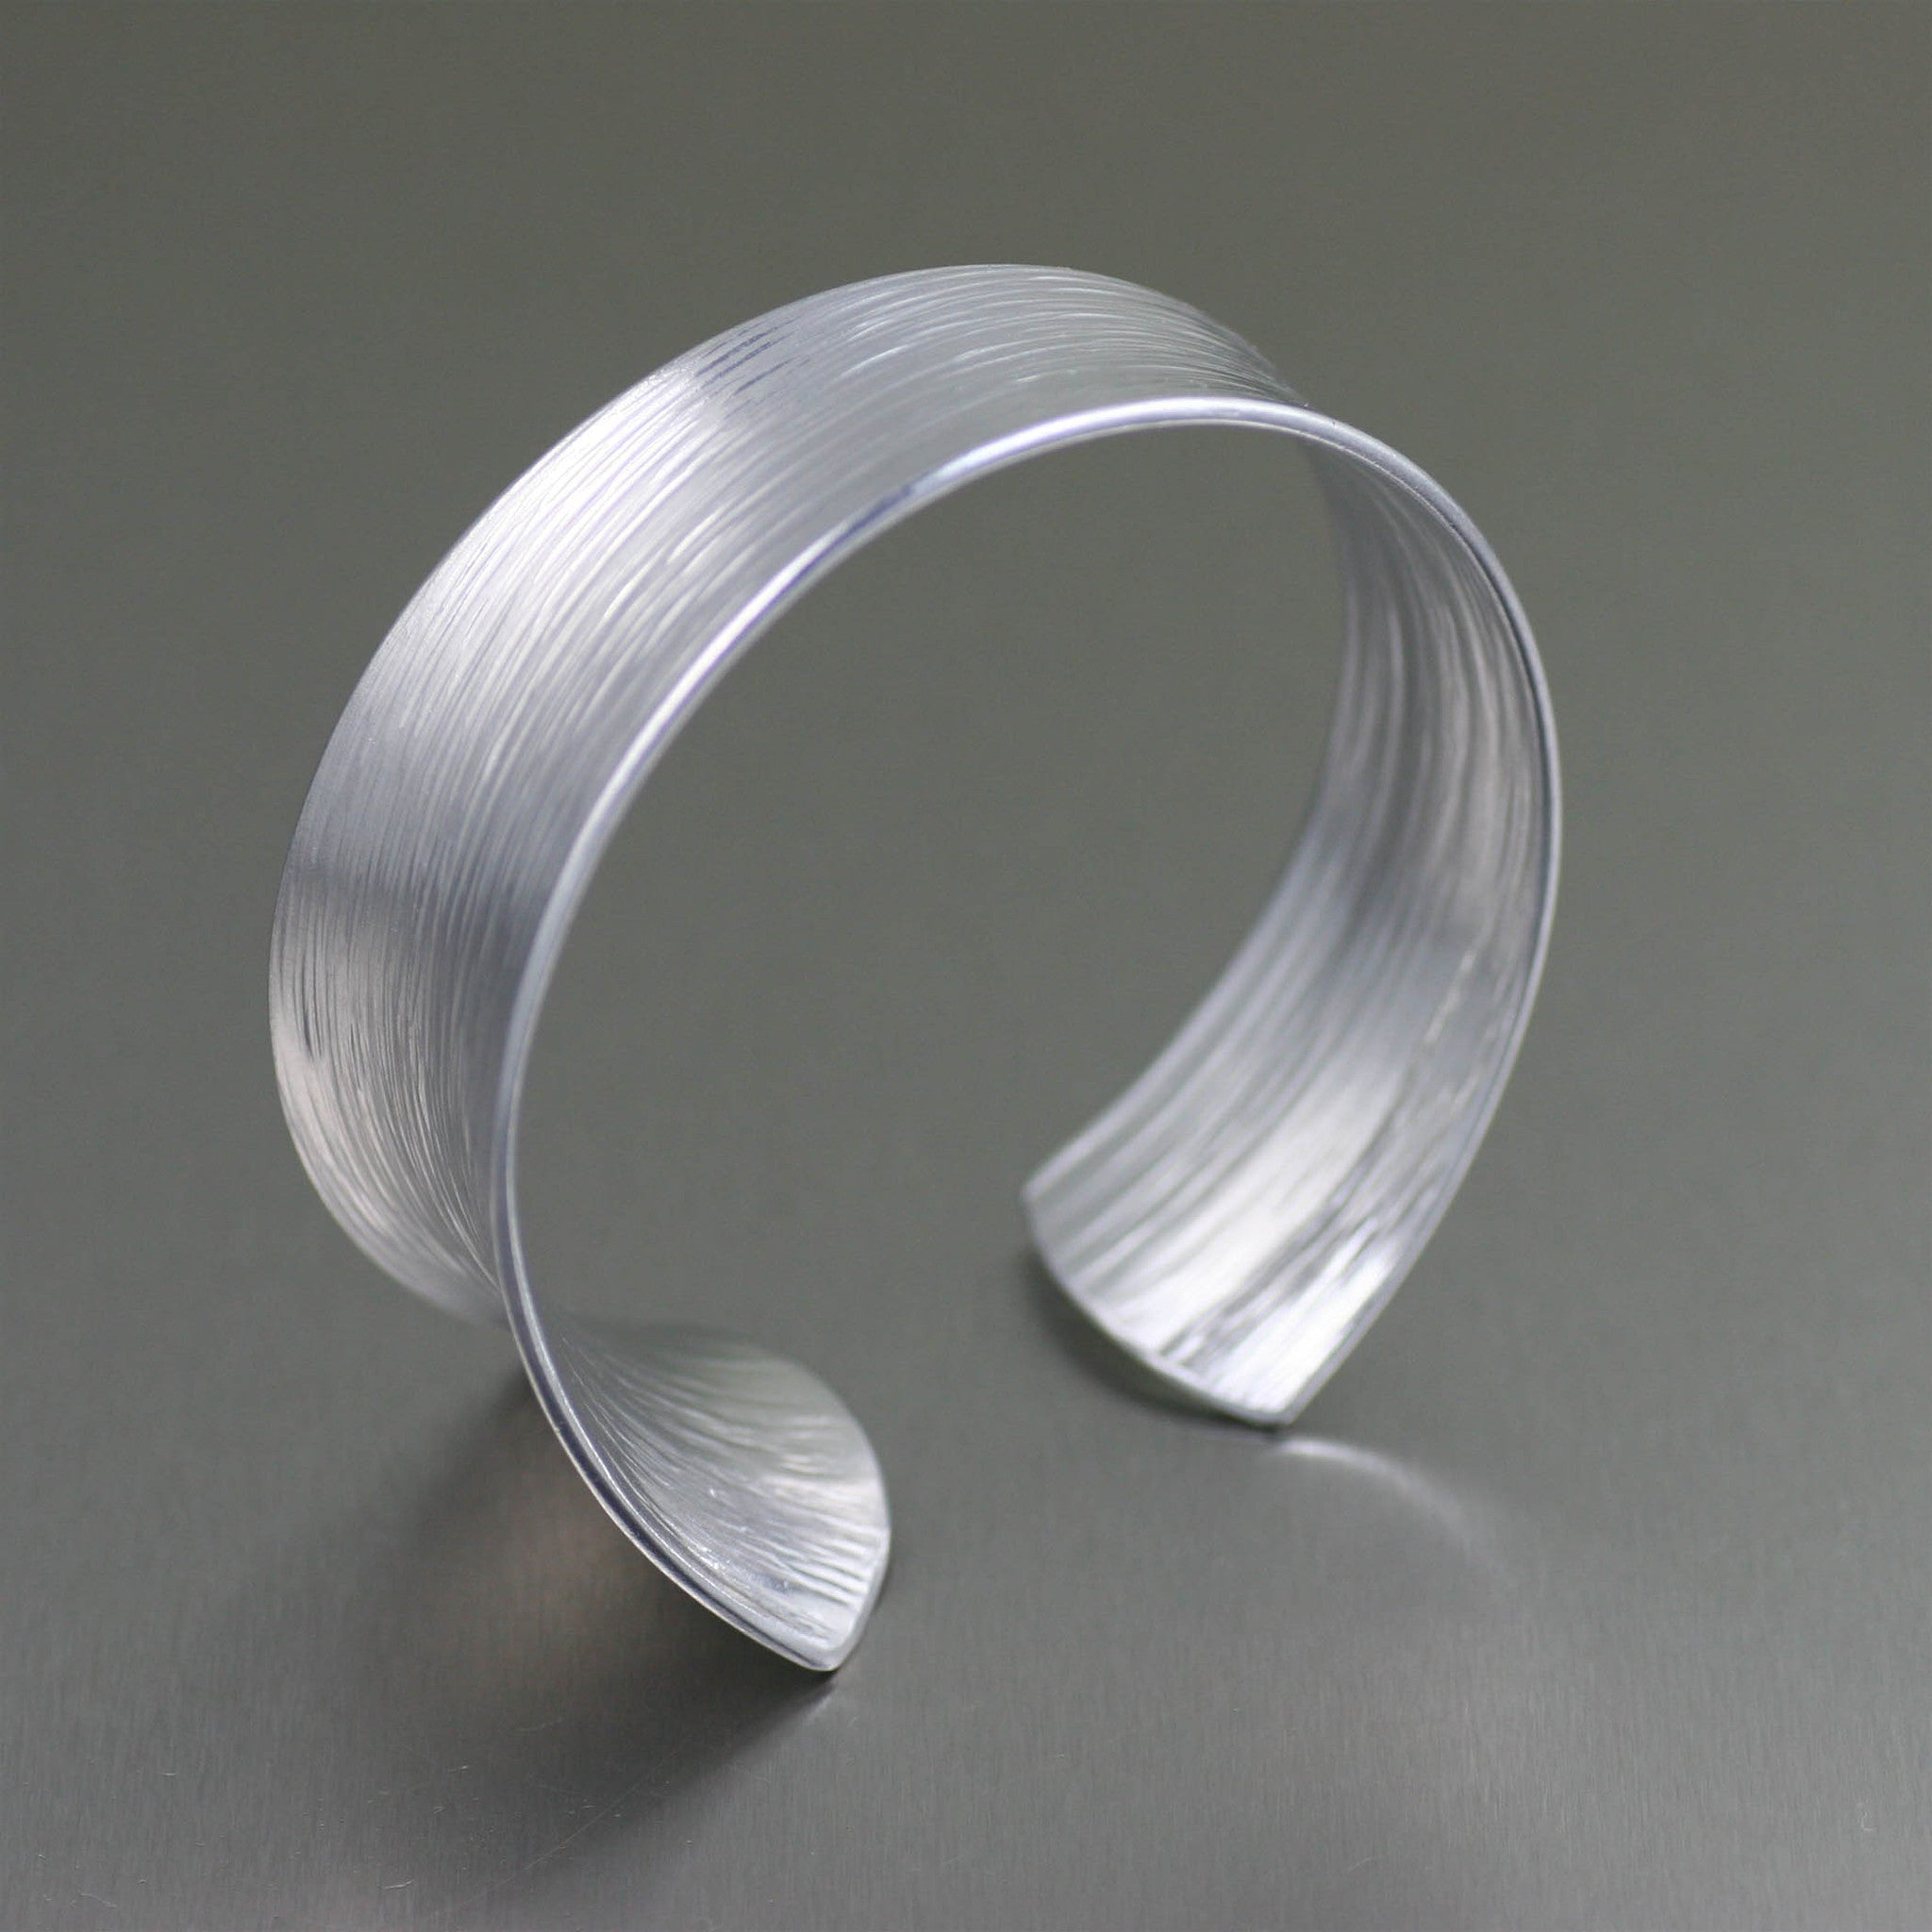 Tapered Bark Anticlastic Aluminum Bangle Bracelet